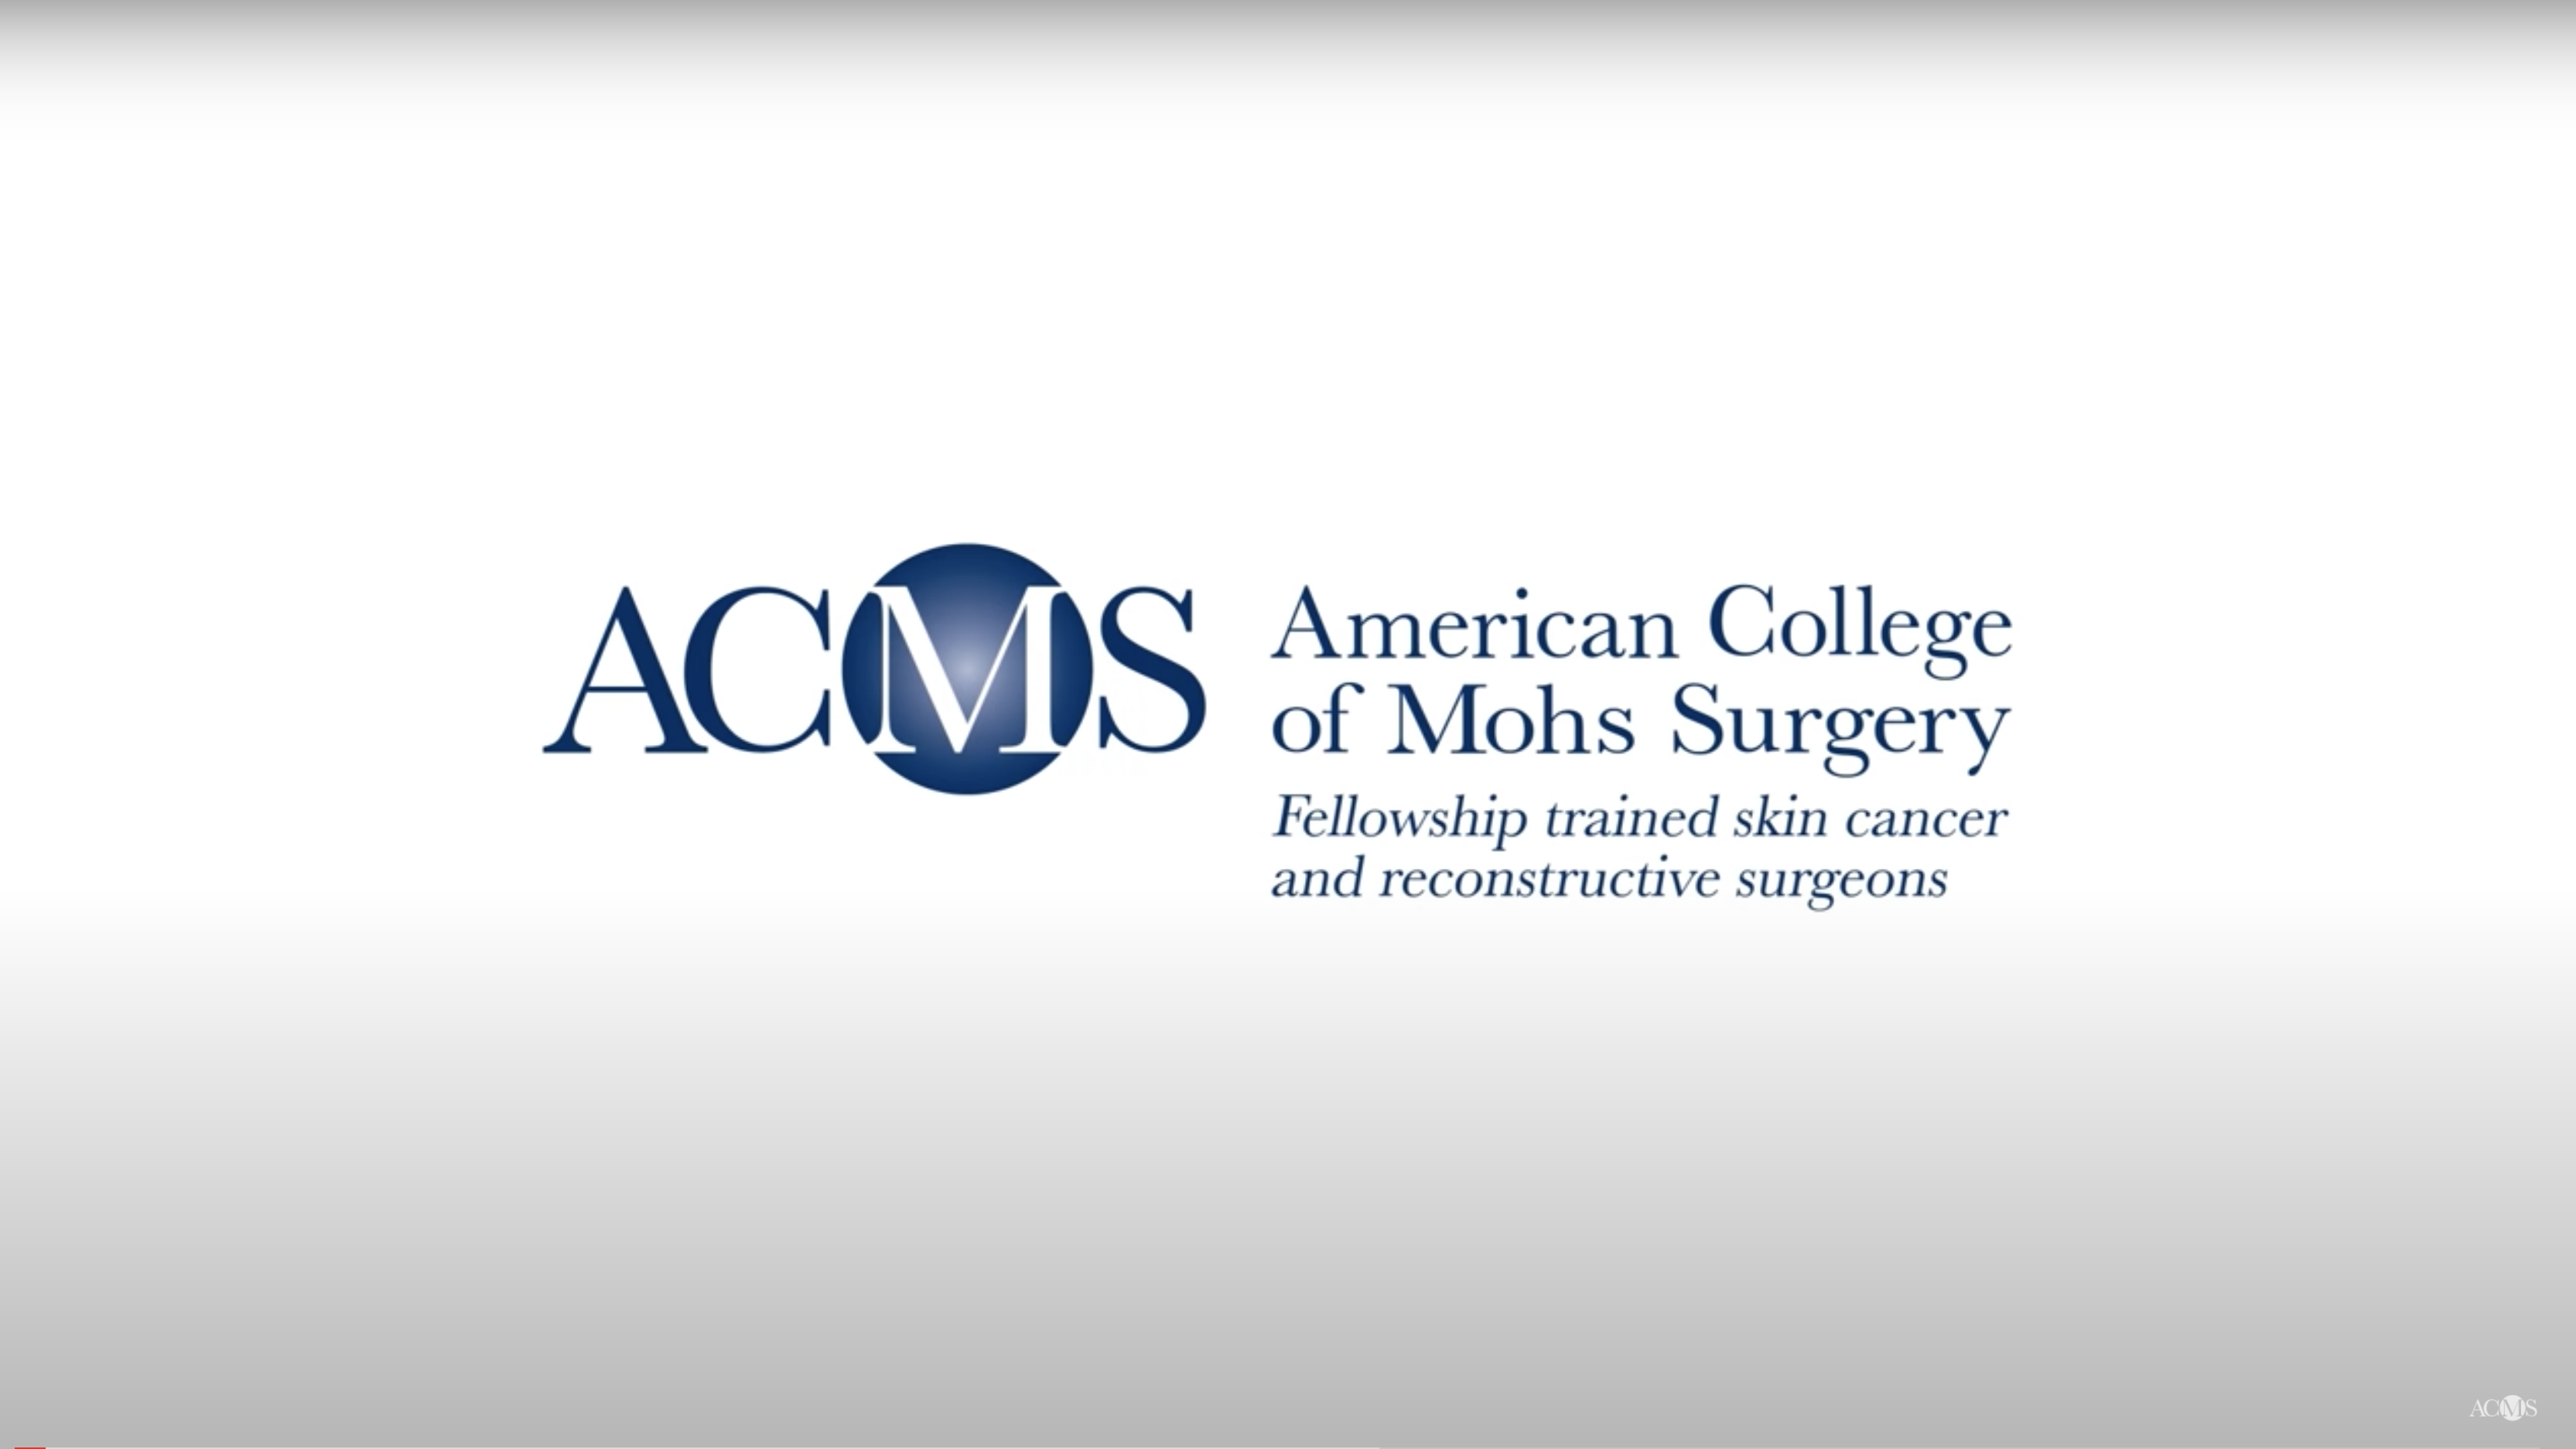 Screenshot of American College for Mohs Surgery Logo from their YouTube channel.